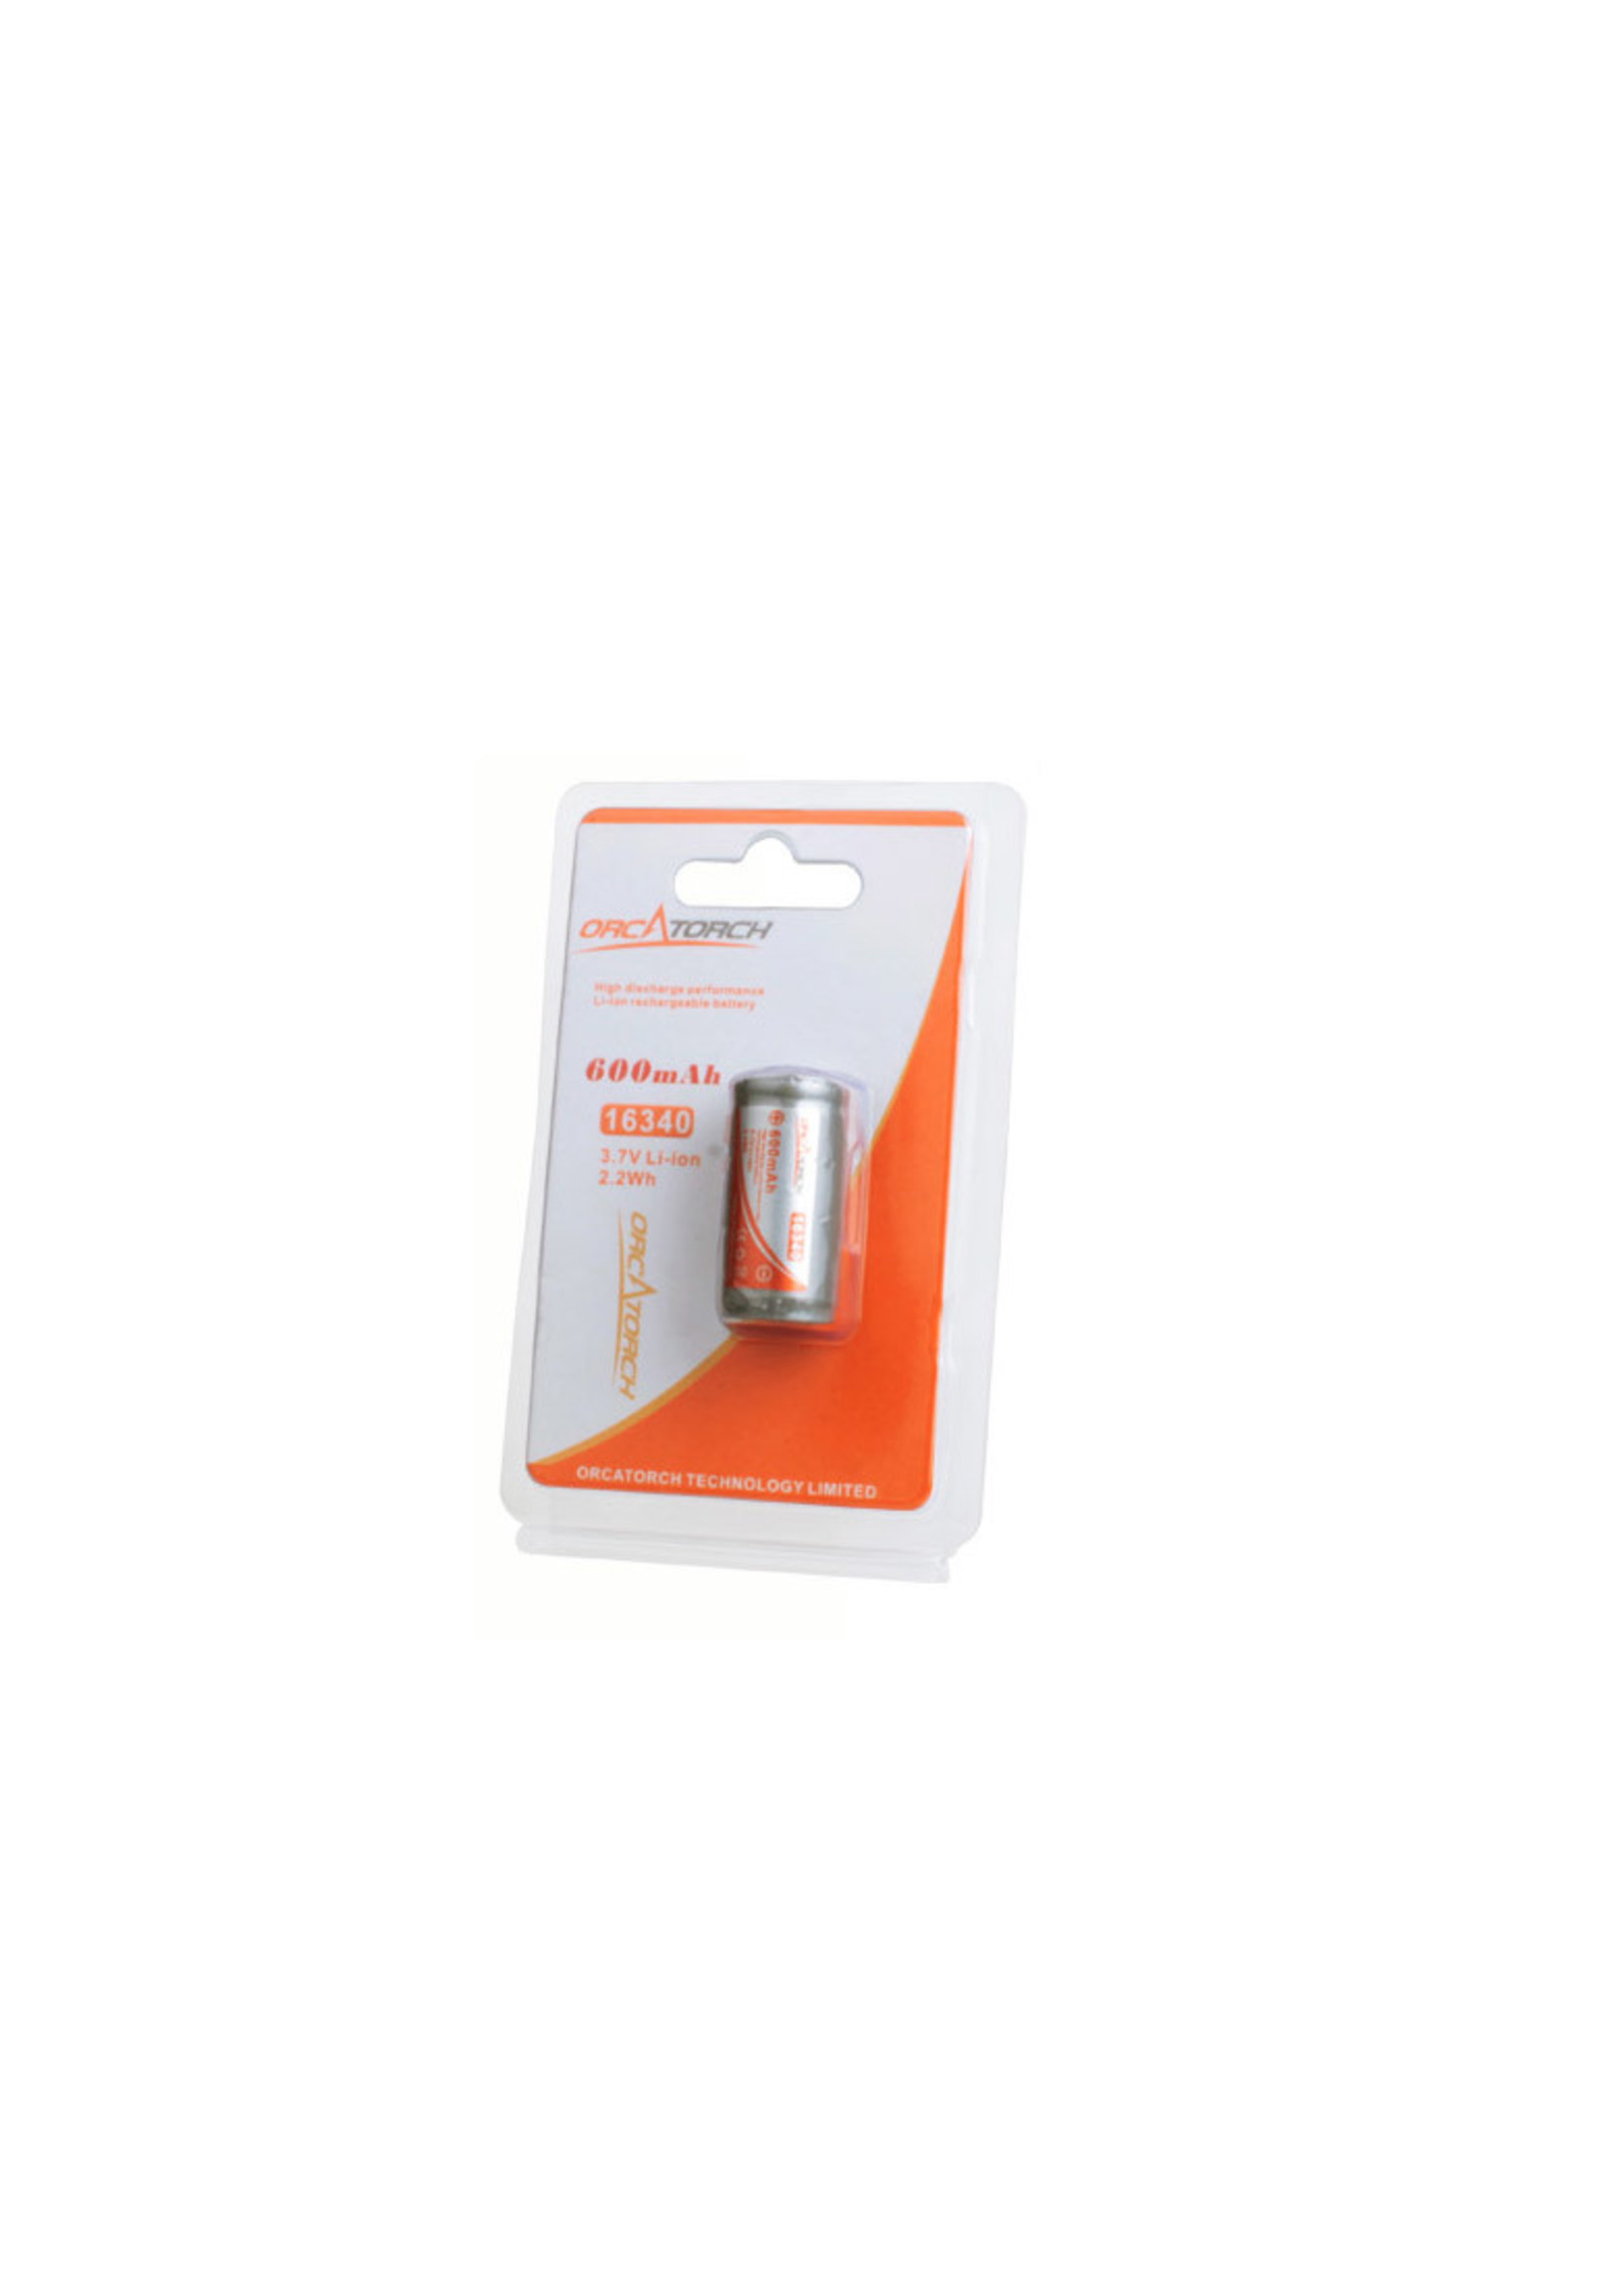 OrcaTorch OrcaTorch 16340 Rechargeable Battery